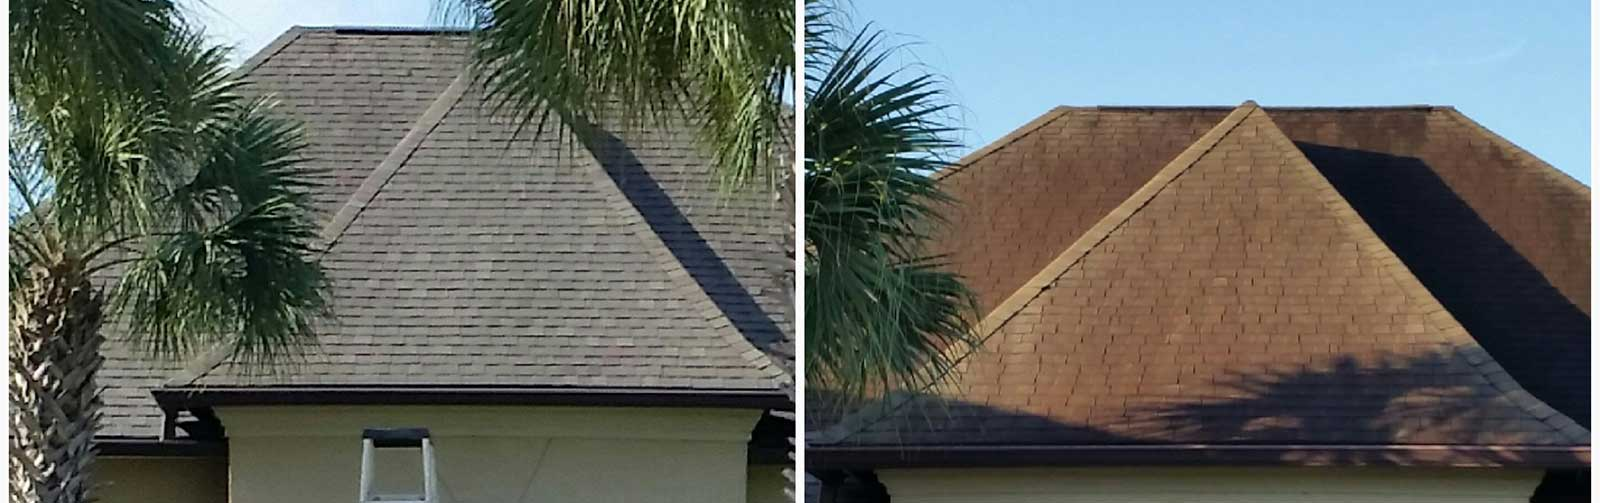 Roof Cleaning Exterior Cleaning Services